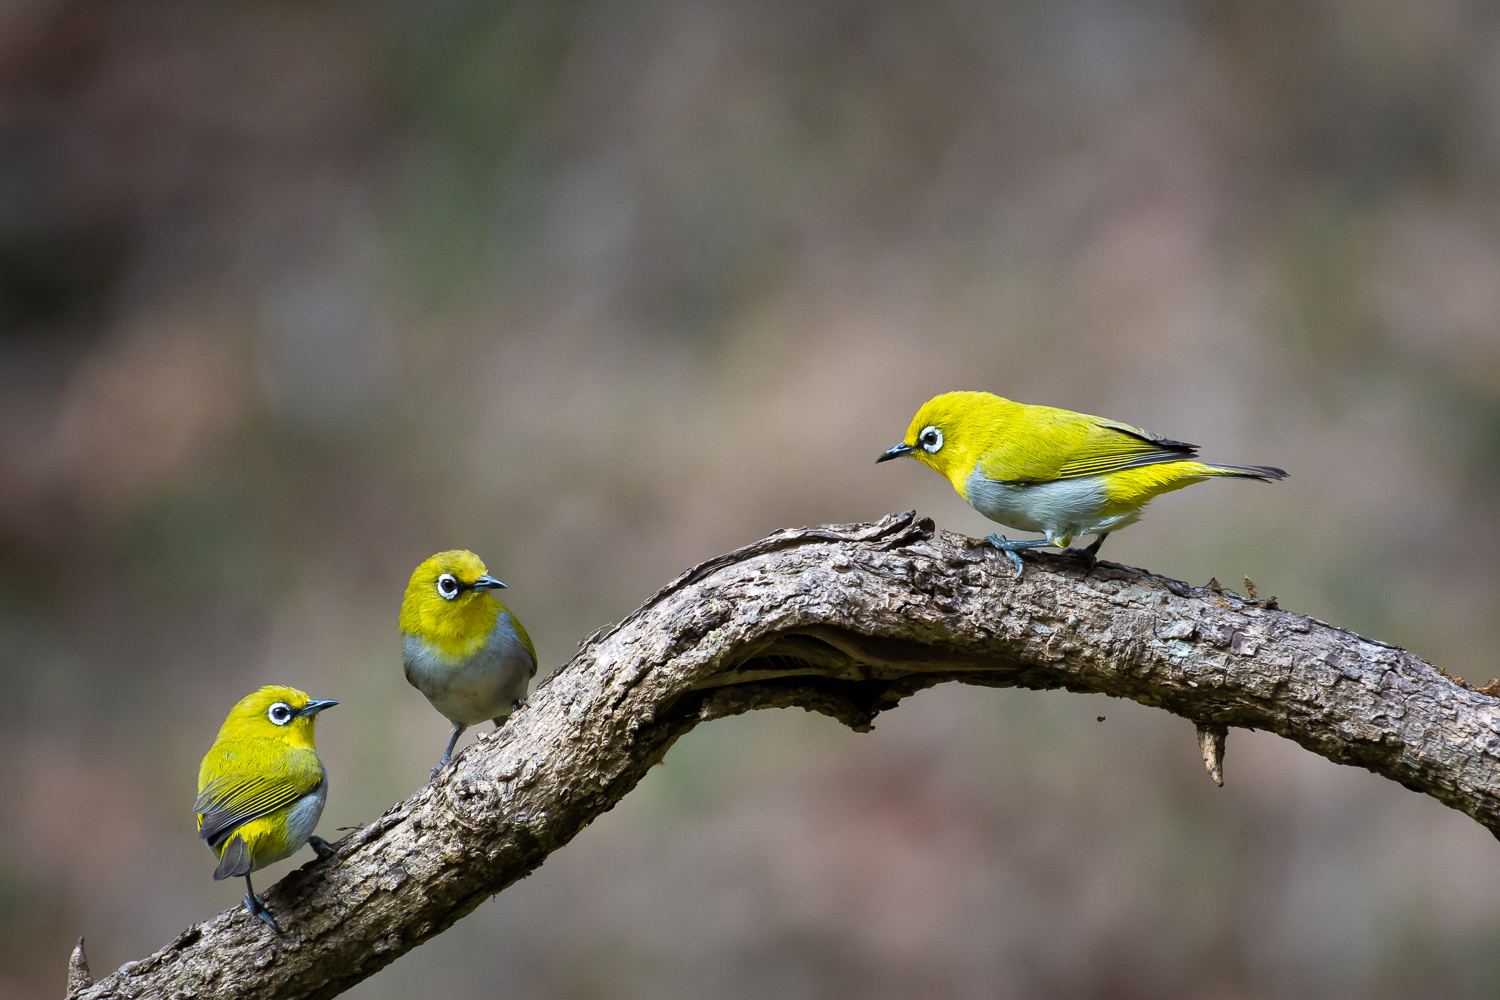 3 oriental white eye birds sitting on a branch